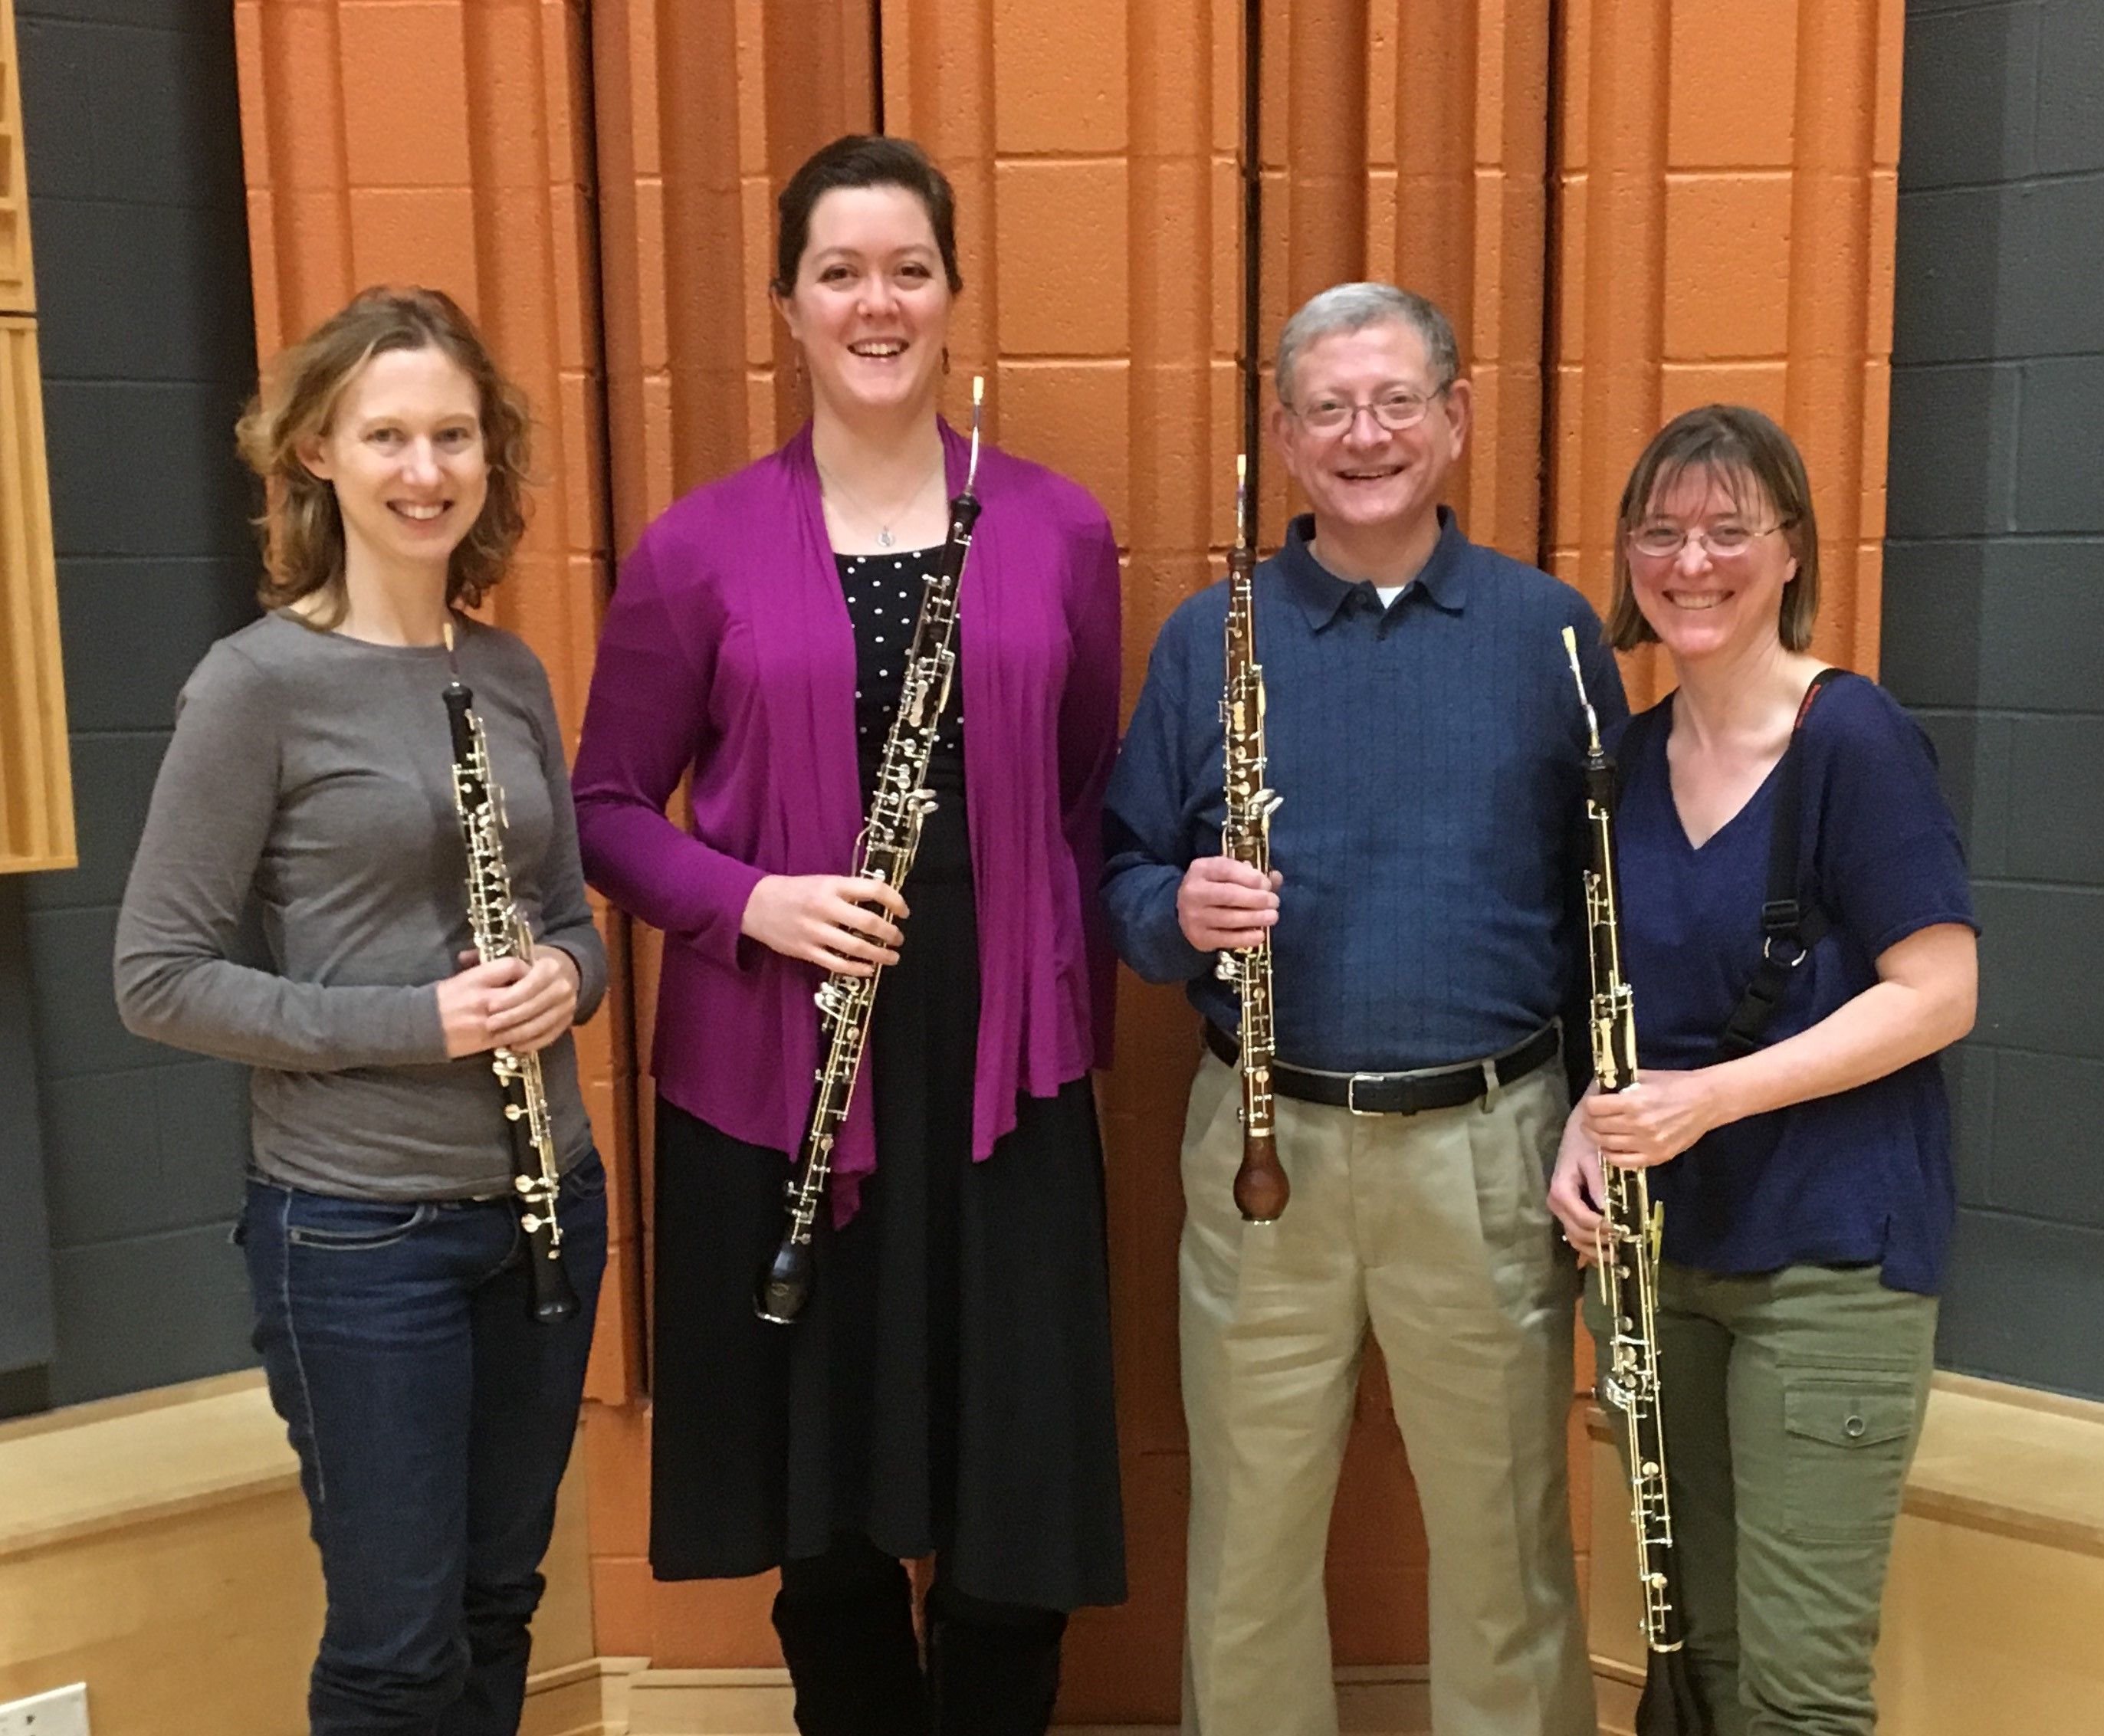 The world premiere of a wind concerto by David Finko will feature. from left to right: Ann Fronckowiak, Sipkje Pesnichak, Paul Schlossman and Sarah Hamilton.